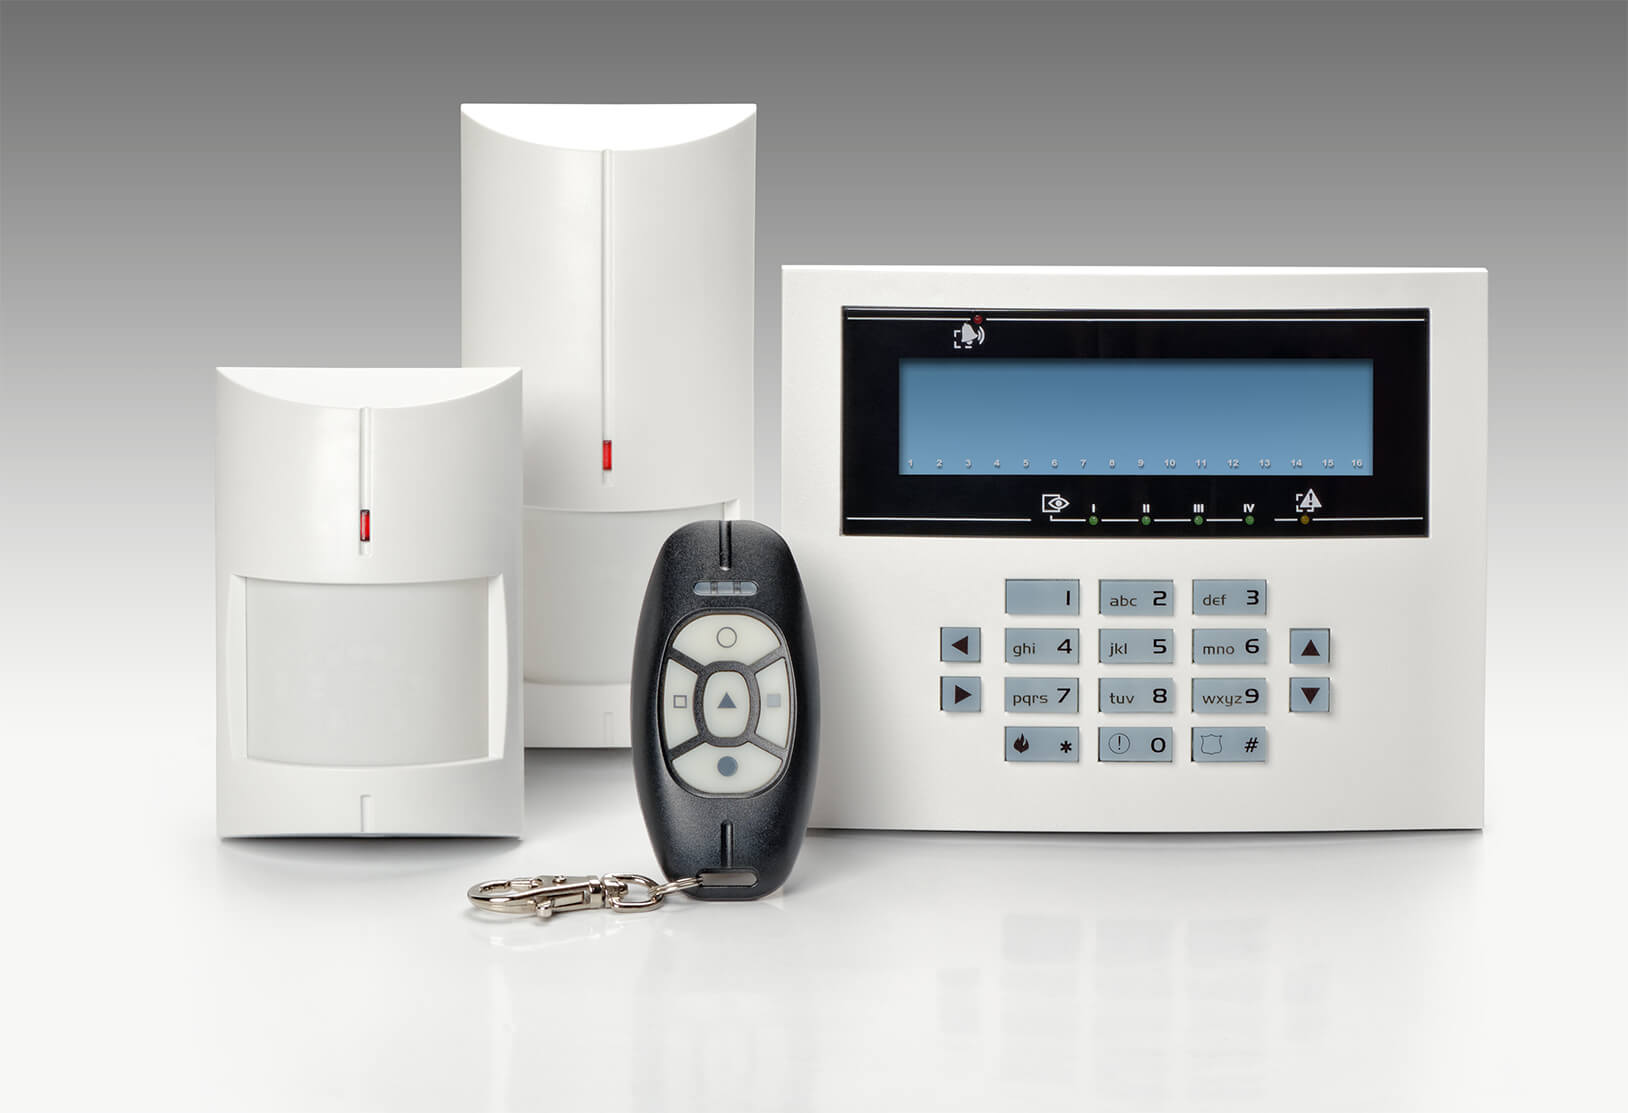 Business & Residential NACOSS Approved Burglar Alarms In Nunhead SE15 - Local Nunhead SE15 security company.Call 02078872244 - Dedicated to Safety & Security. Companies, shops and homes ..